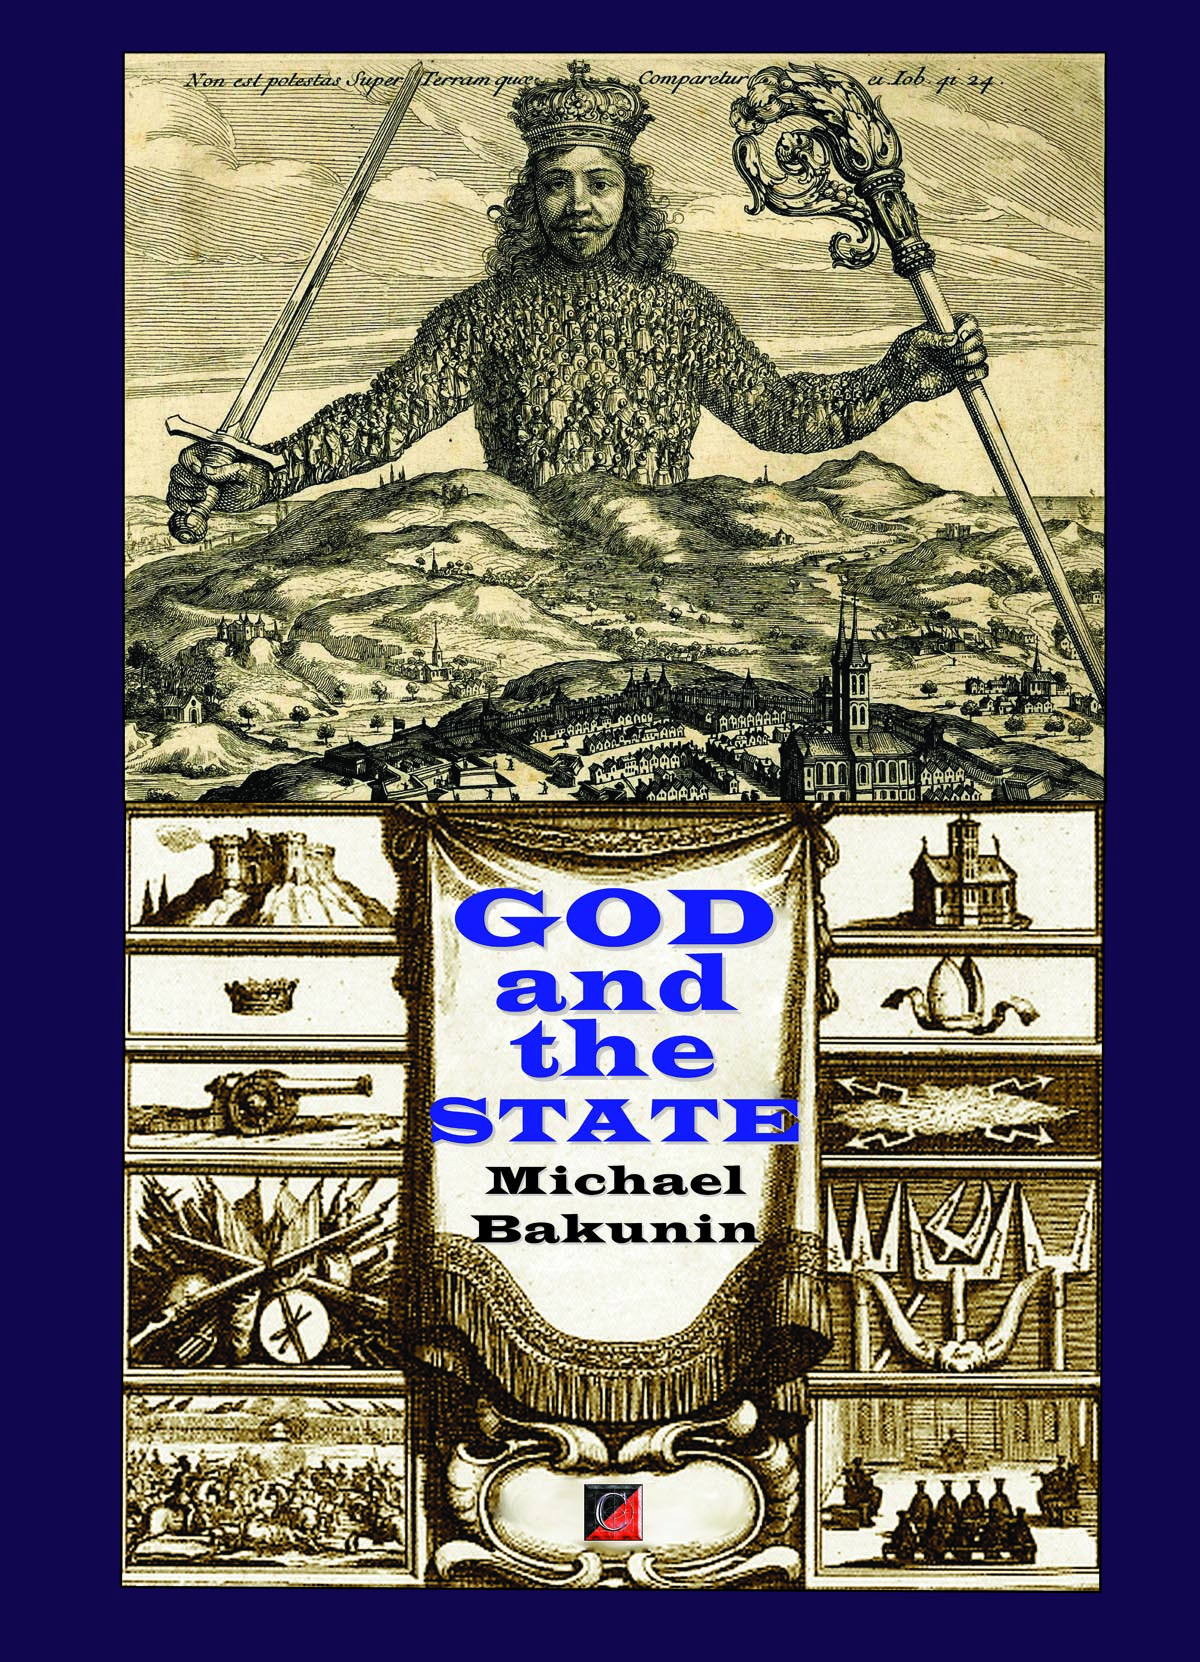 GOD AND THE STATE — Michael Bakunin